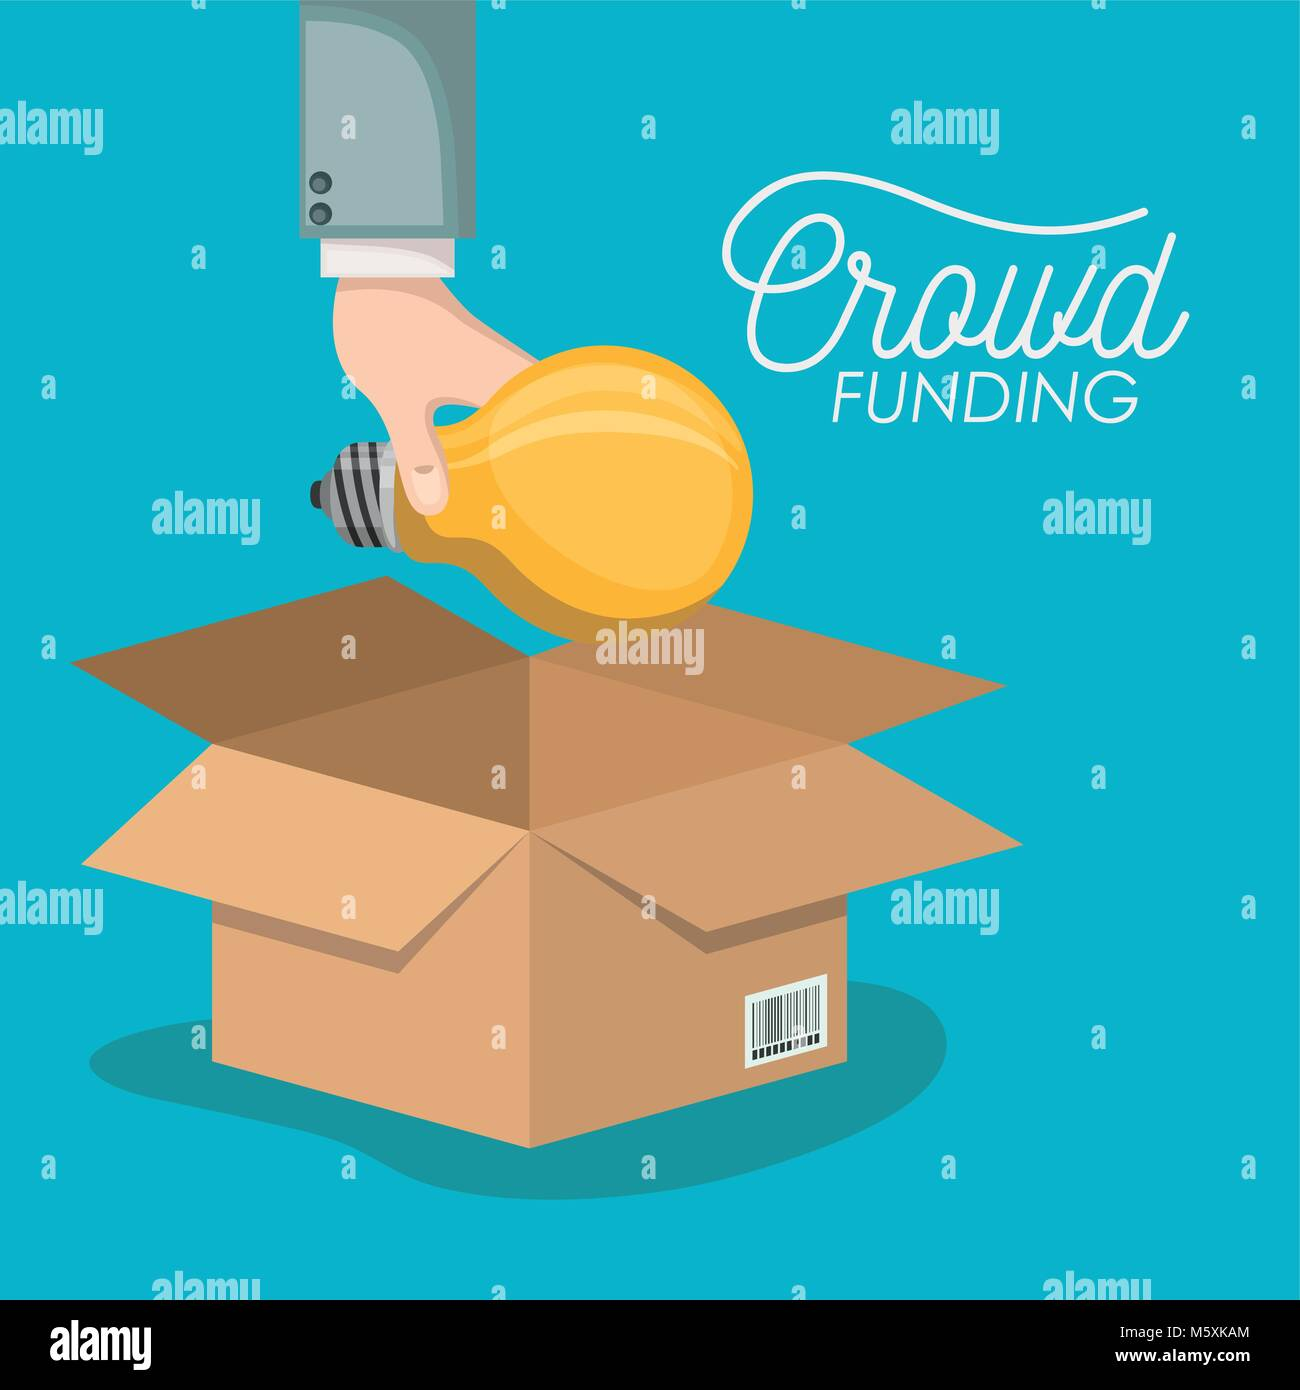 crowd funding poster with hand depositing bulb in cardboard box in blue background - Stock Image